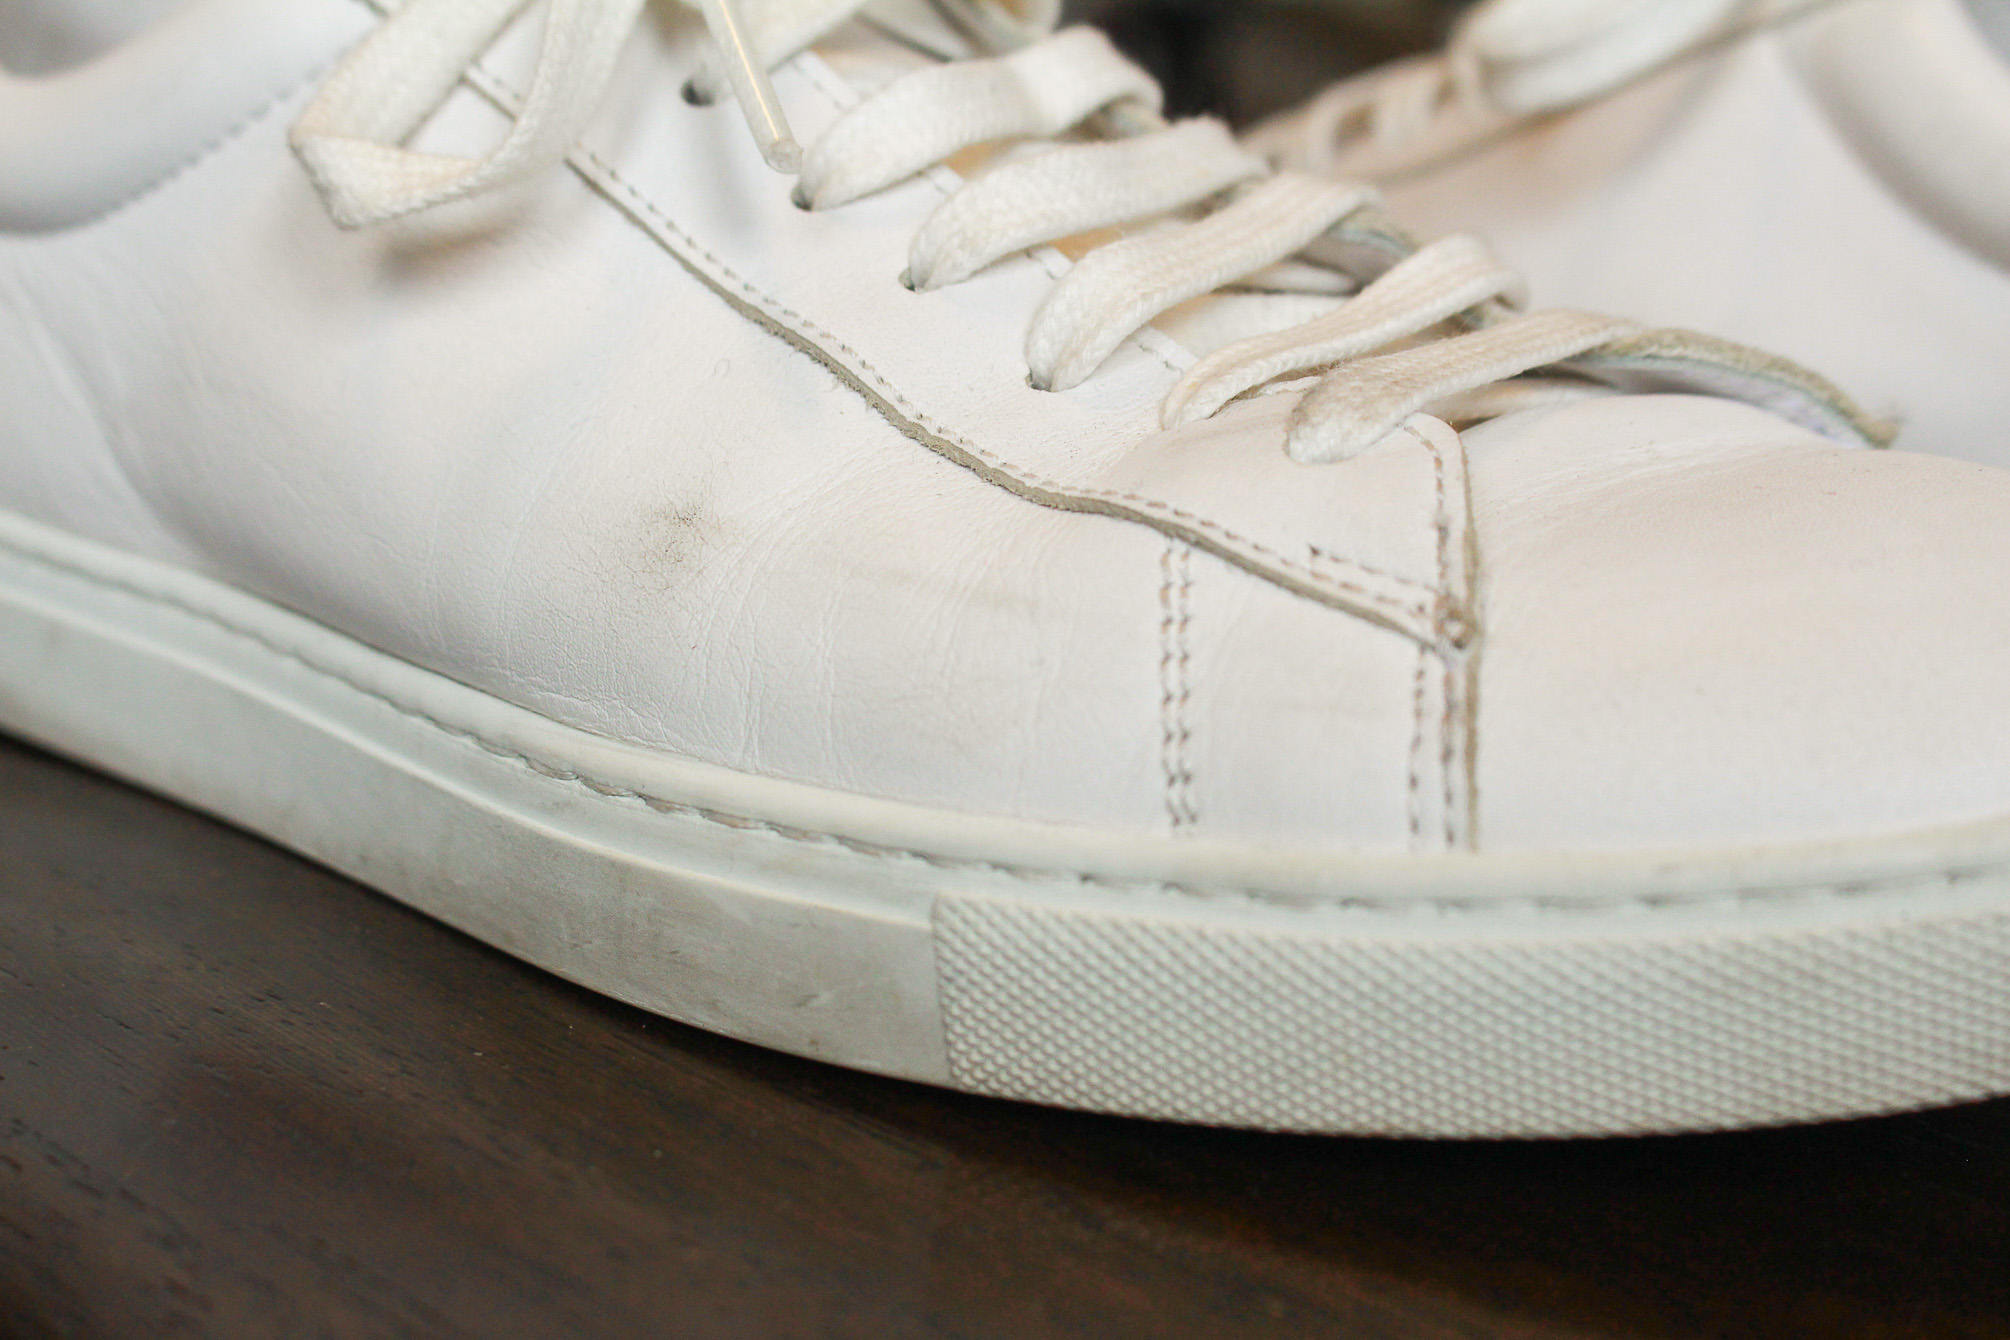 Blemishes on Oliver Cabell sneakers